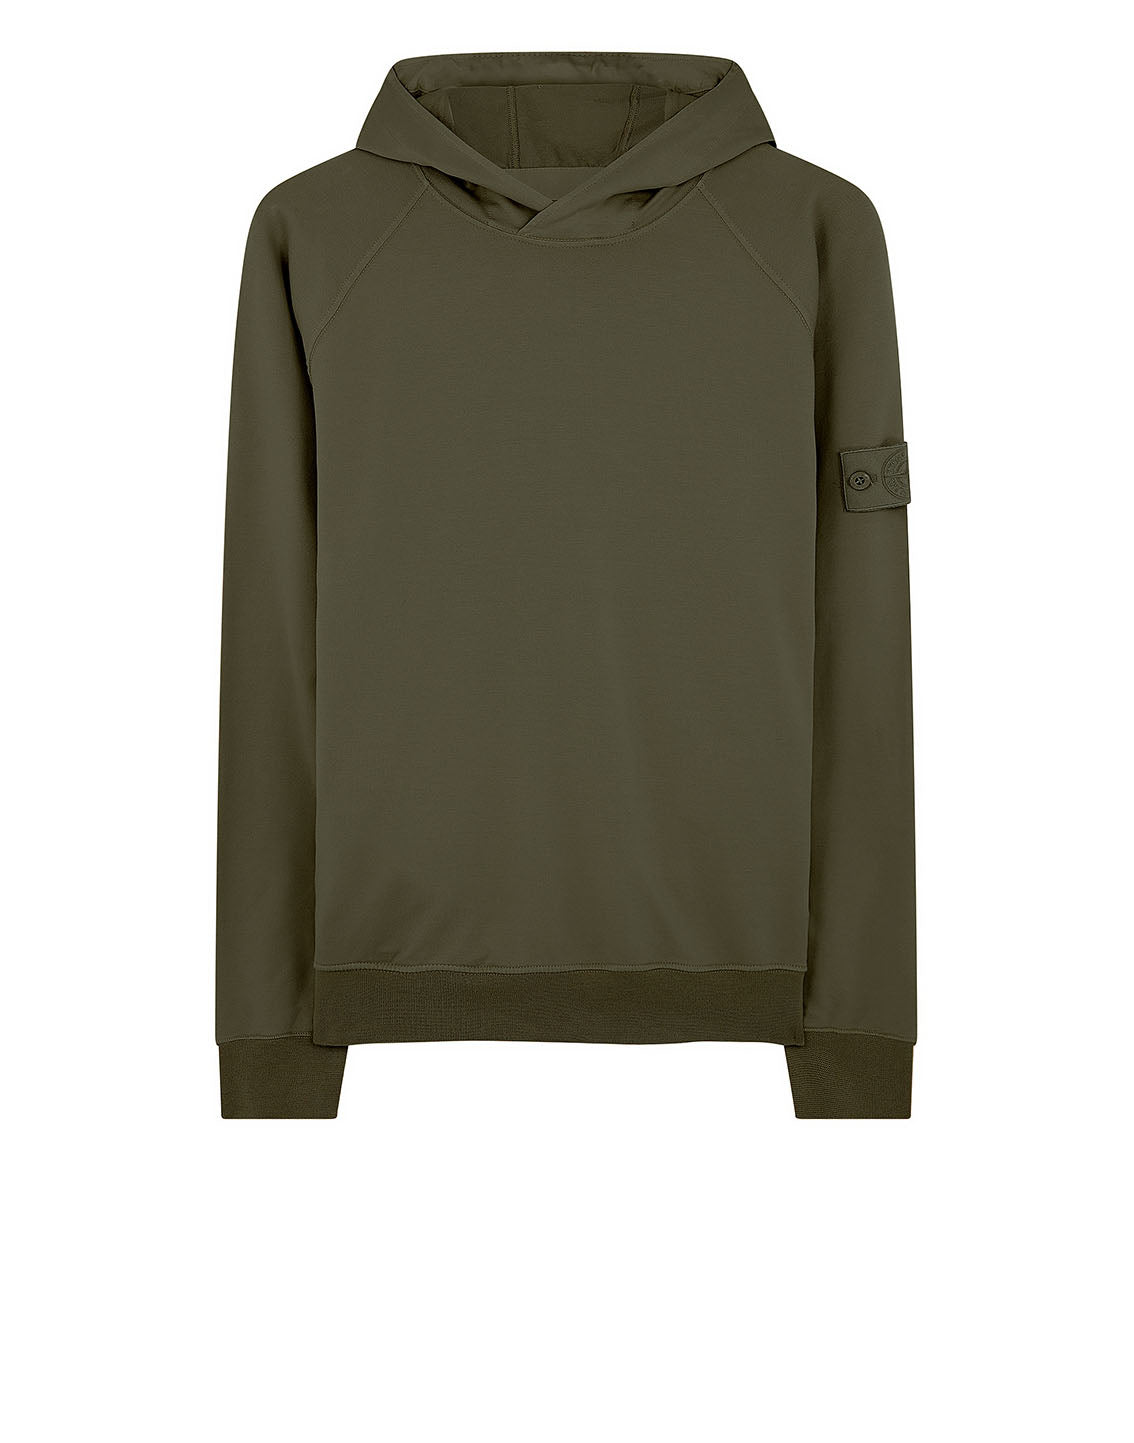 653F3 GHOST PIECE_COTTON STRETCH FLEECE Sweatshirt in Military Green